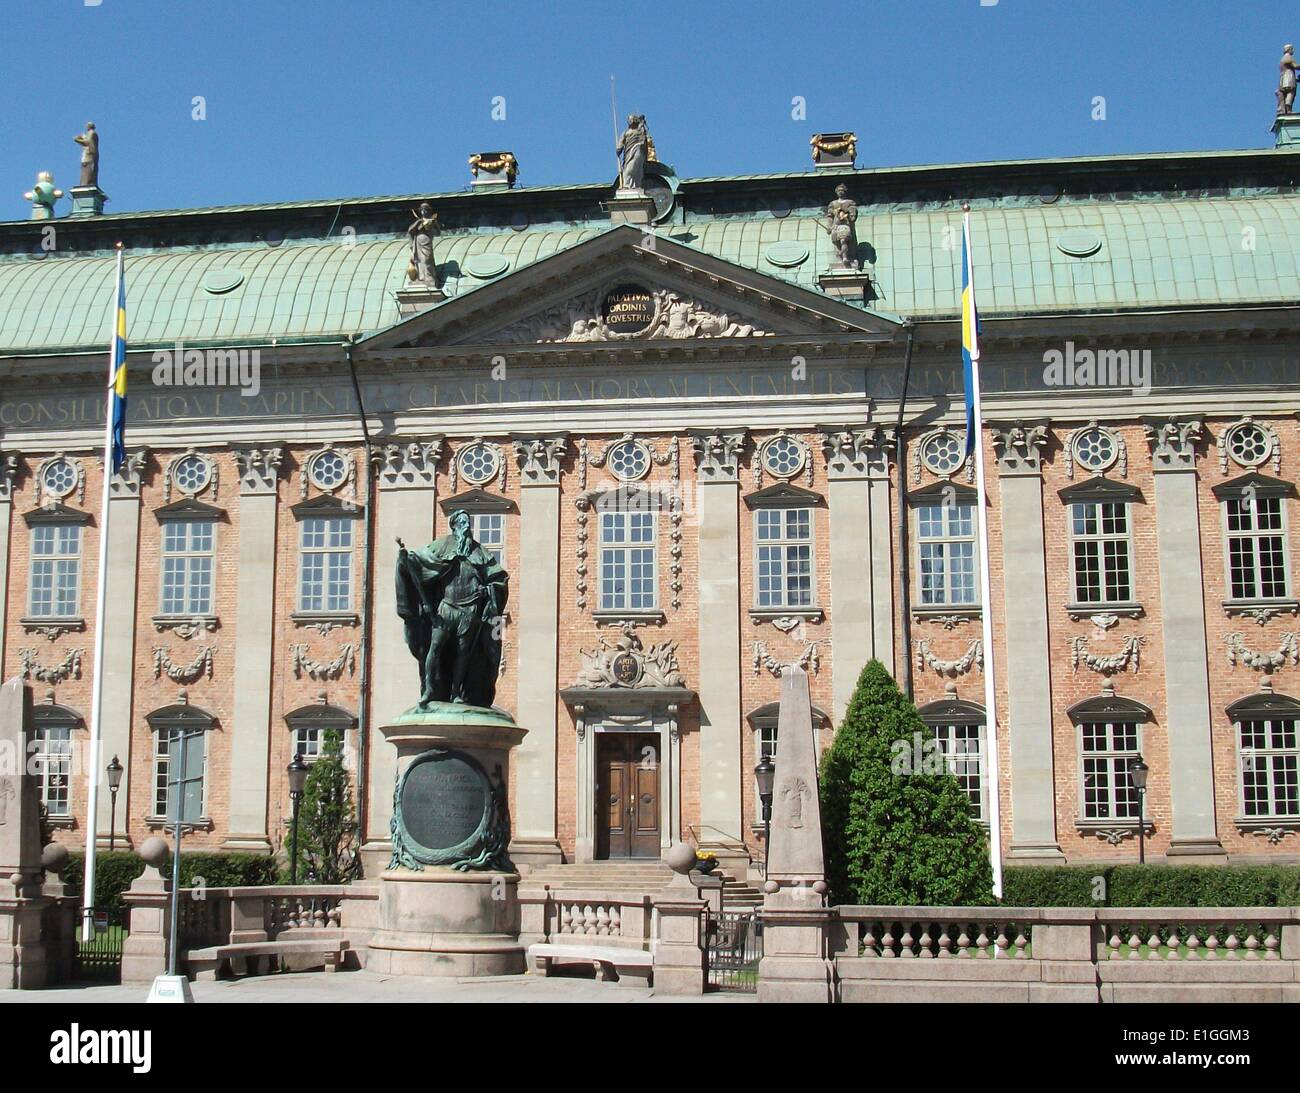 Neo-Classical, baroque architecture in Stockholm - Stock Image